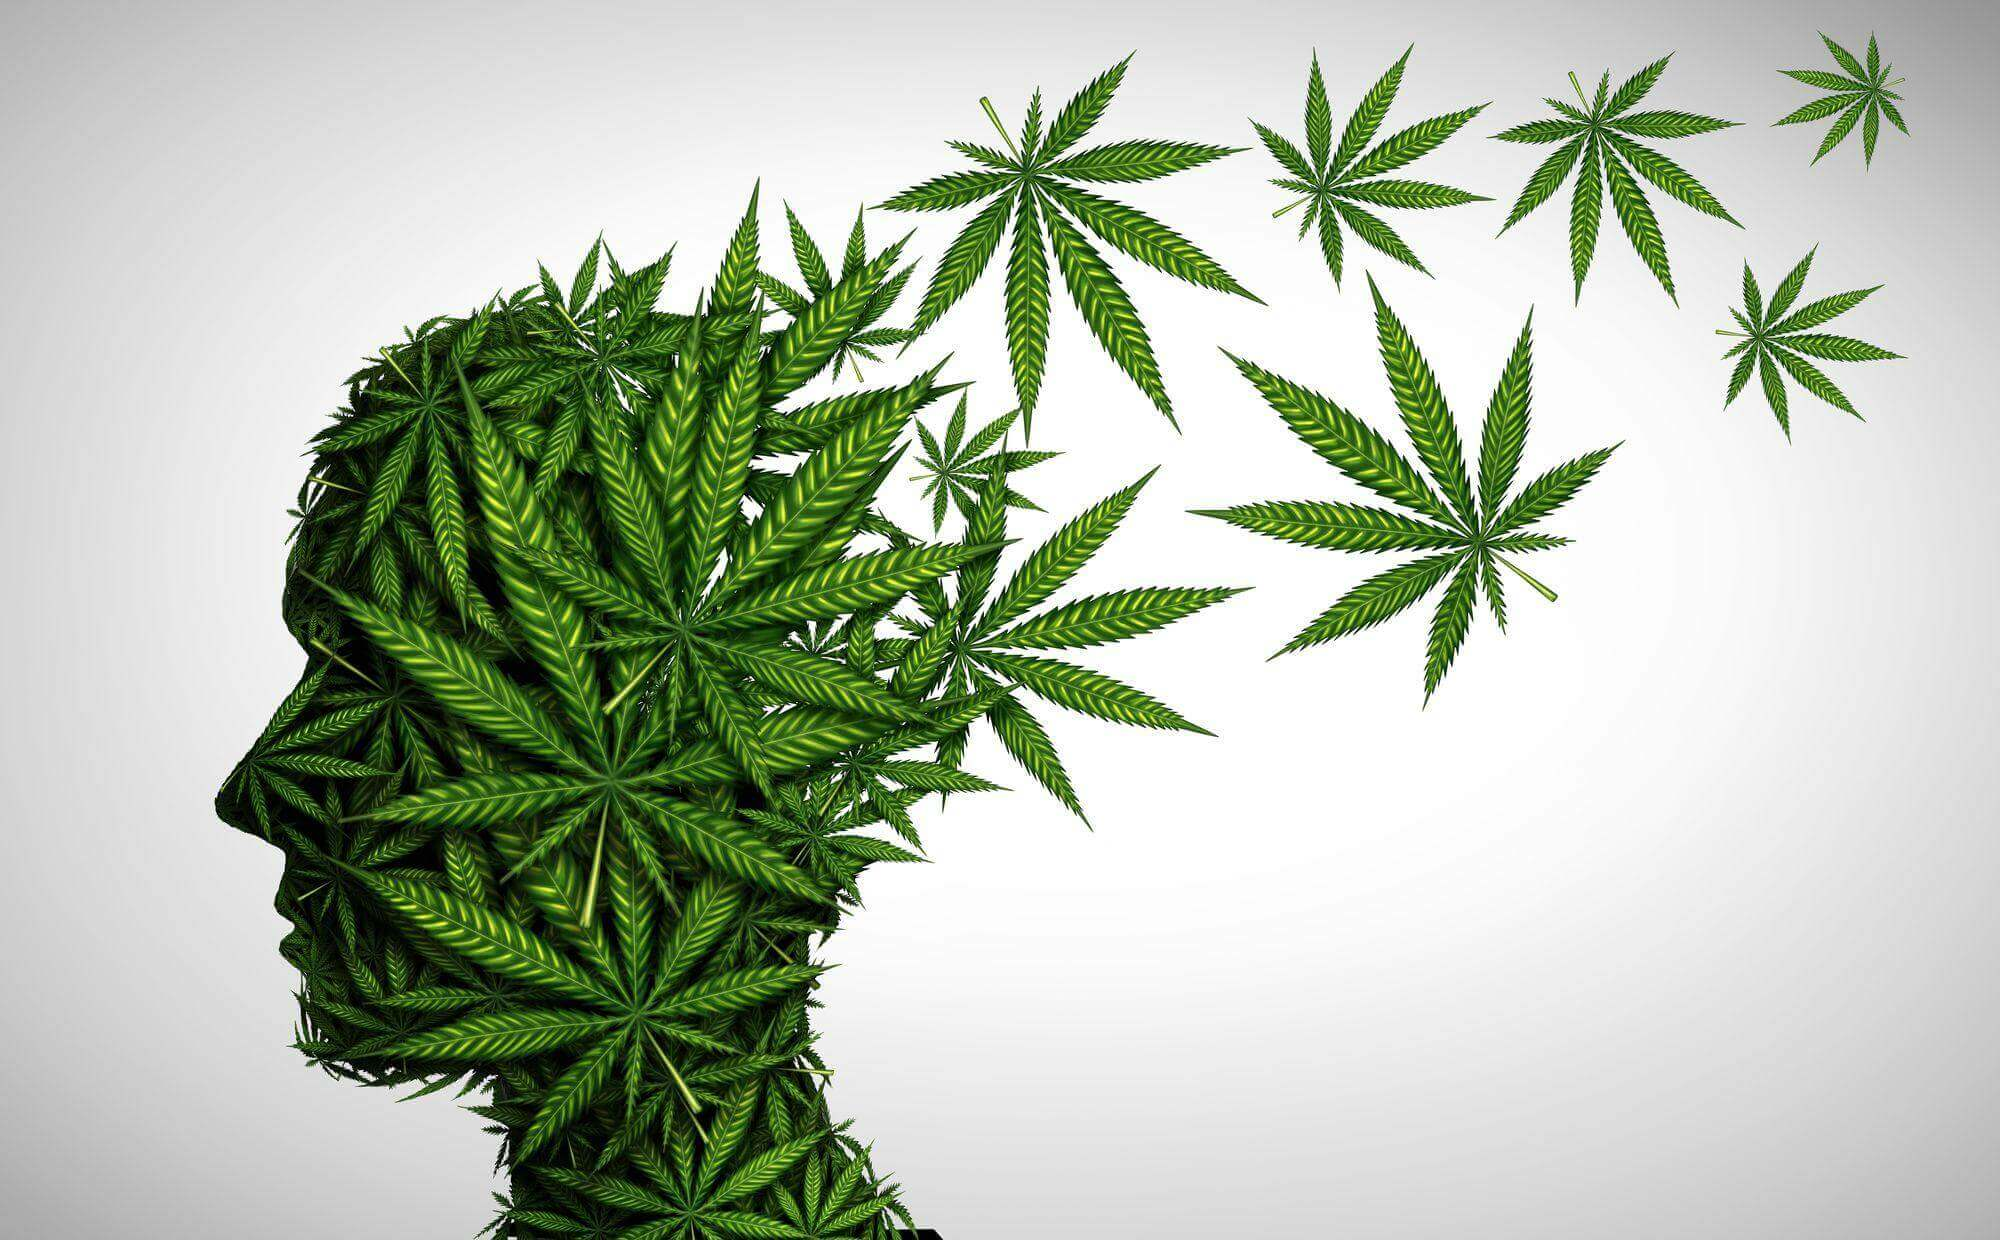 How long does Cannabis stay in your system?